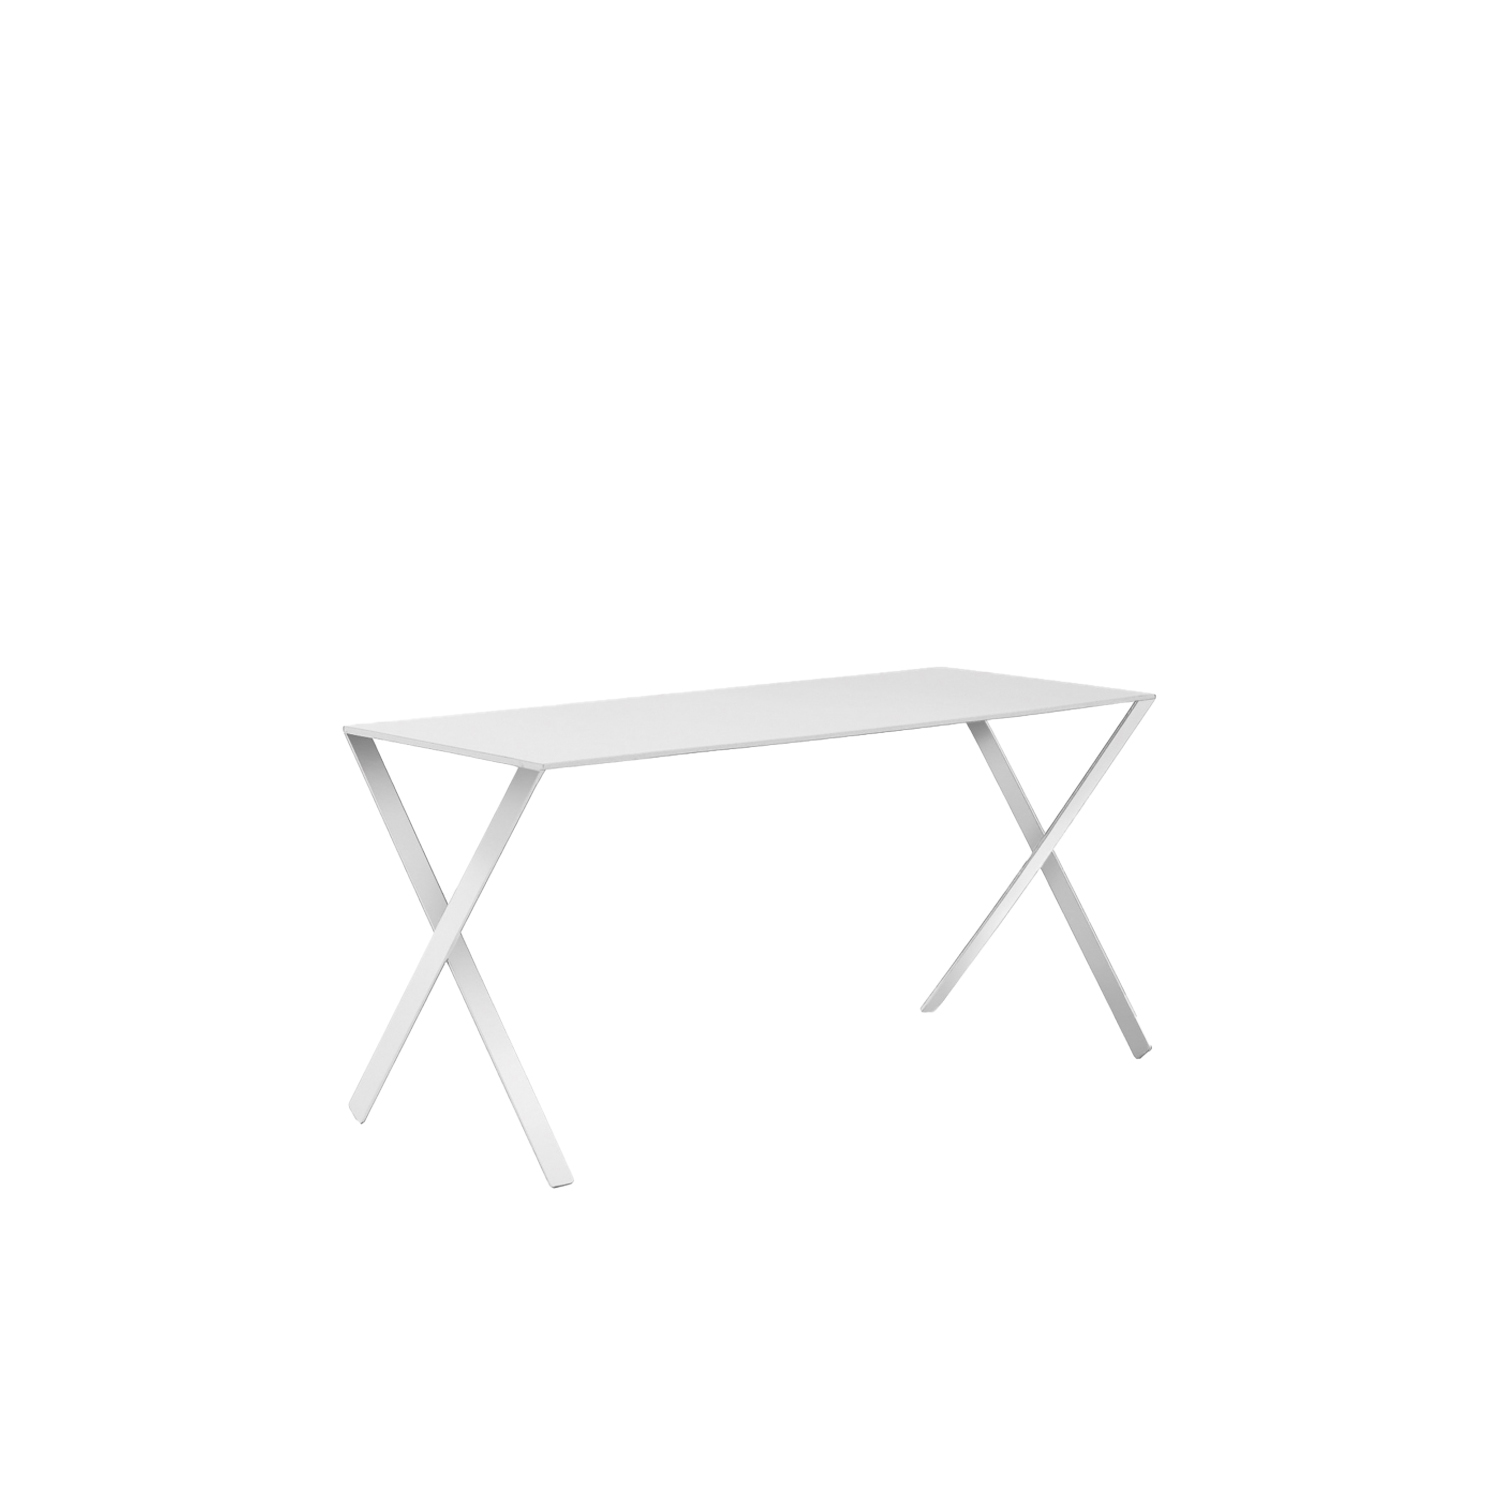 Bambi Table - The Bambi table, which can also be used as a desk, was designed by Nendo. Completely matte lacquered in the colours white, anthracite and mud, the table is composed of a top made of folded laser-cut aluminium plate with a metal support base and legs in metal extrusion.